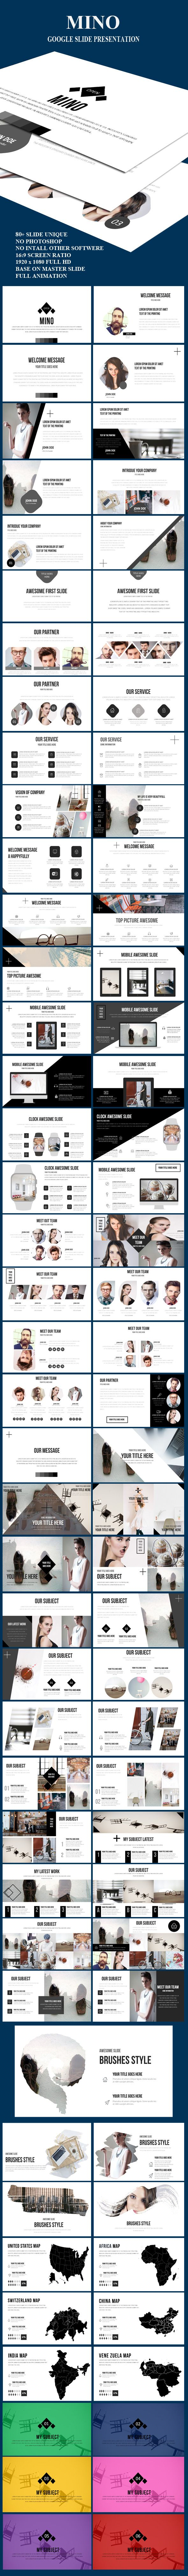 Mino Google Slide PowerPoint Presentation Template